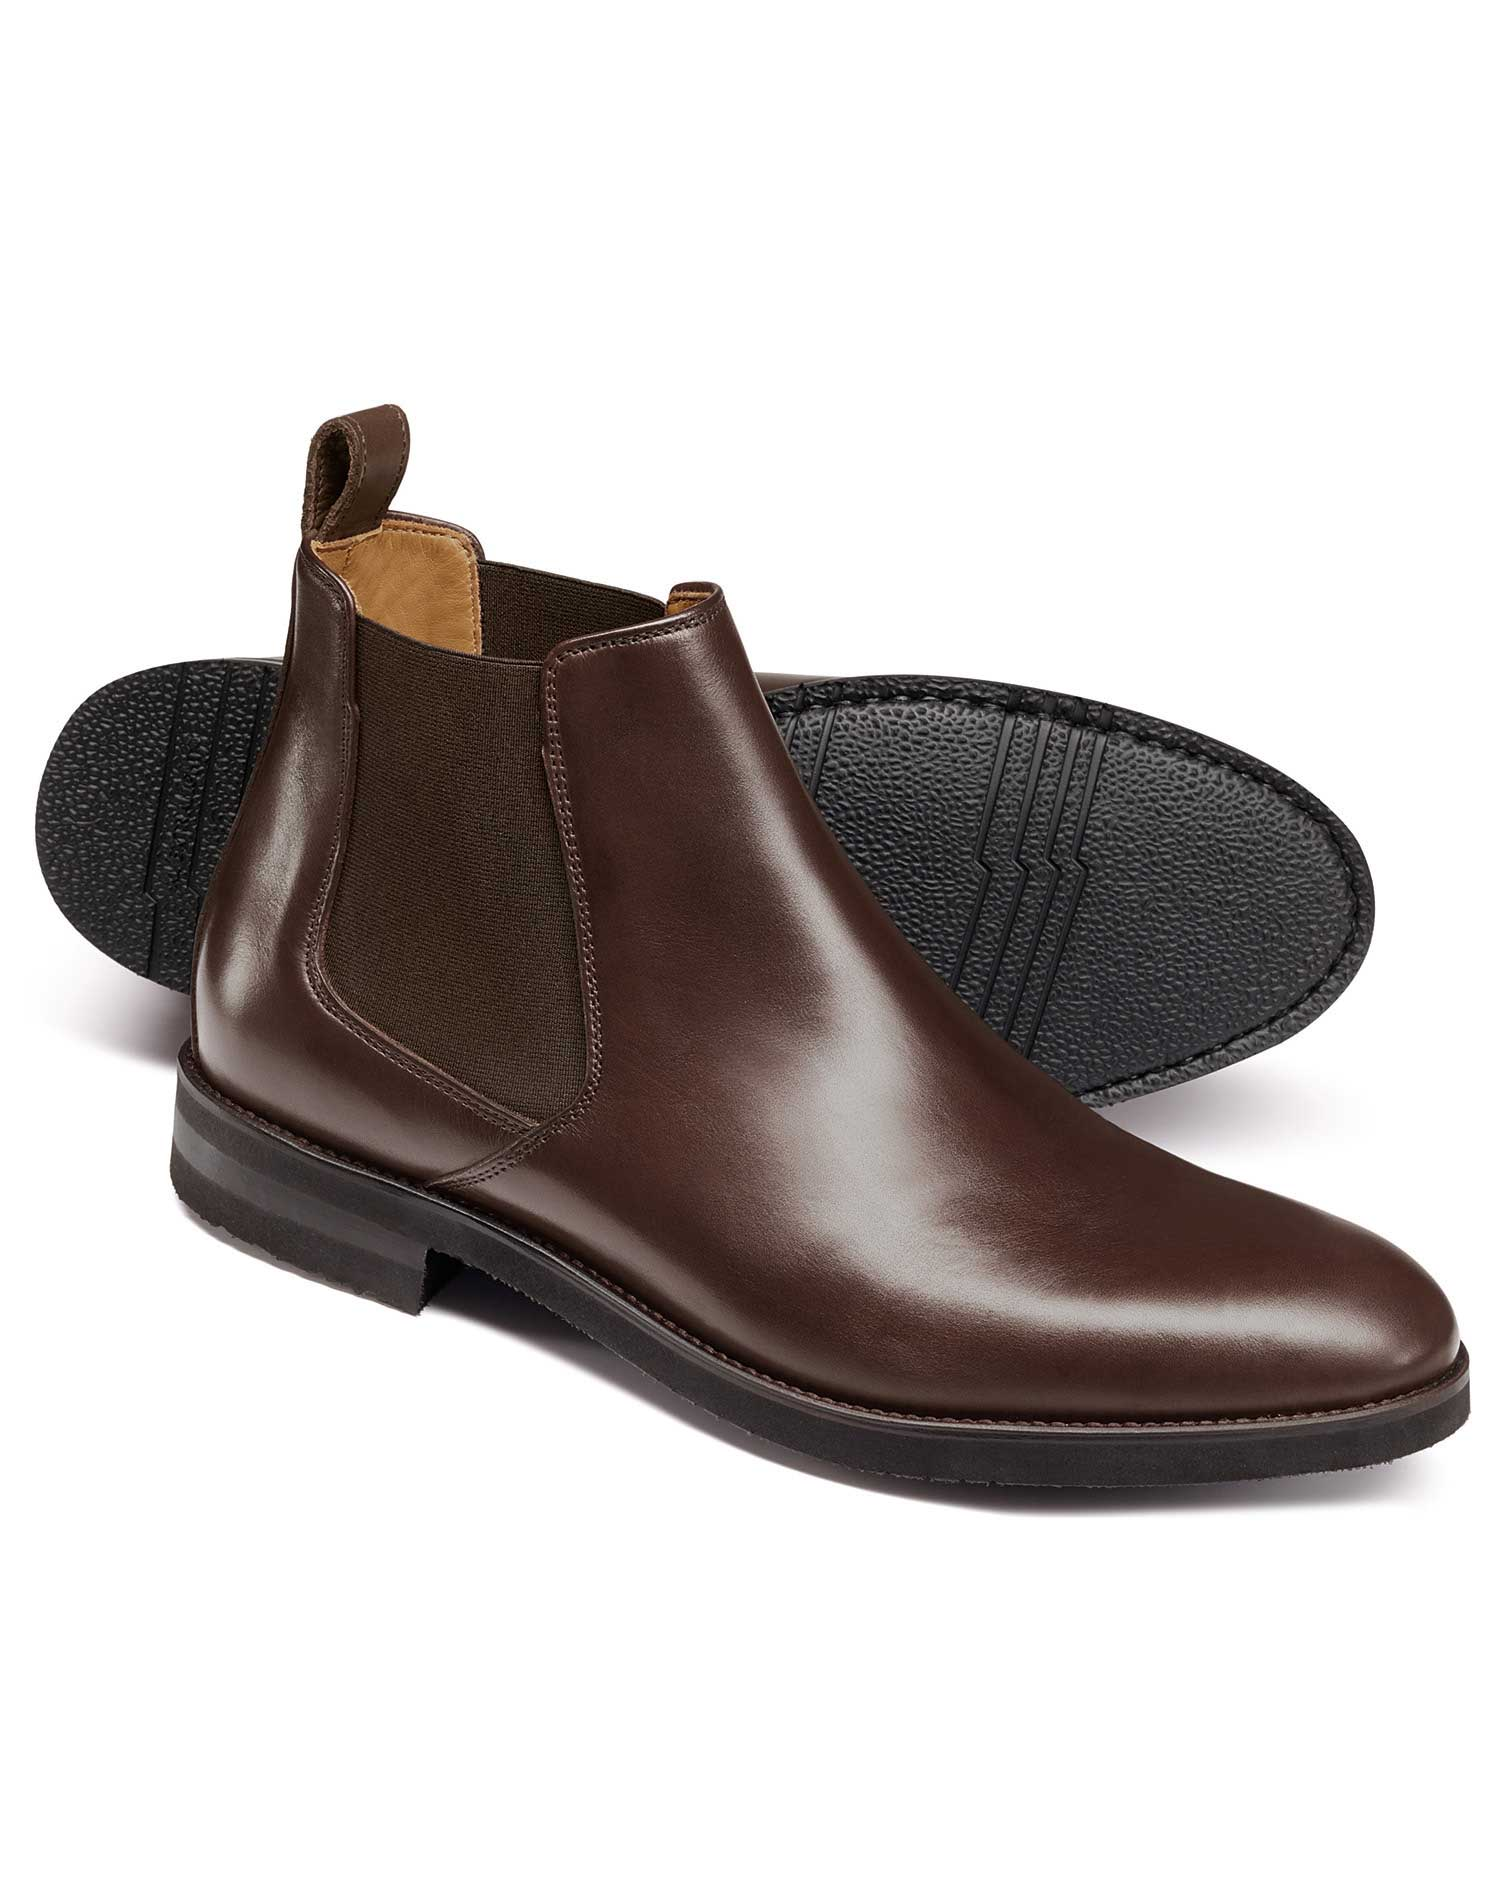 Chocolate Extra Lightweight Chelsea Boots Size 9 R by Charles Tyrwhitt